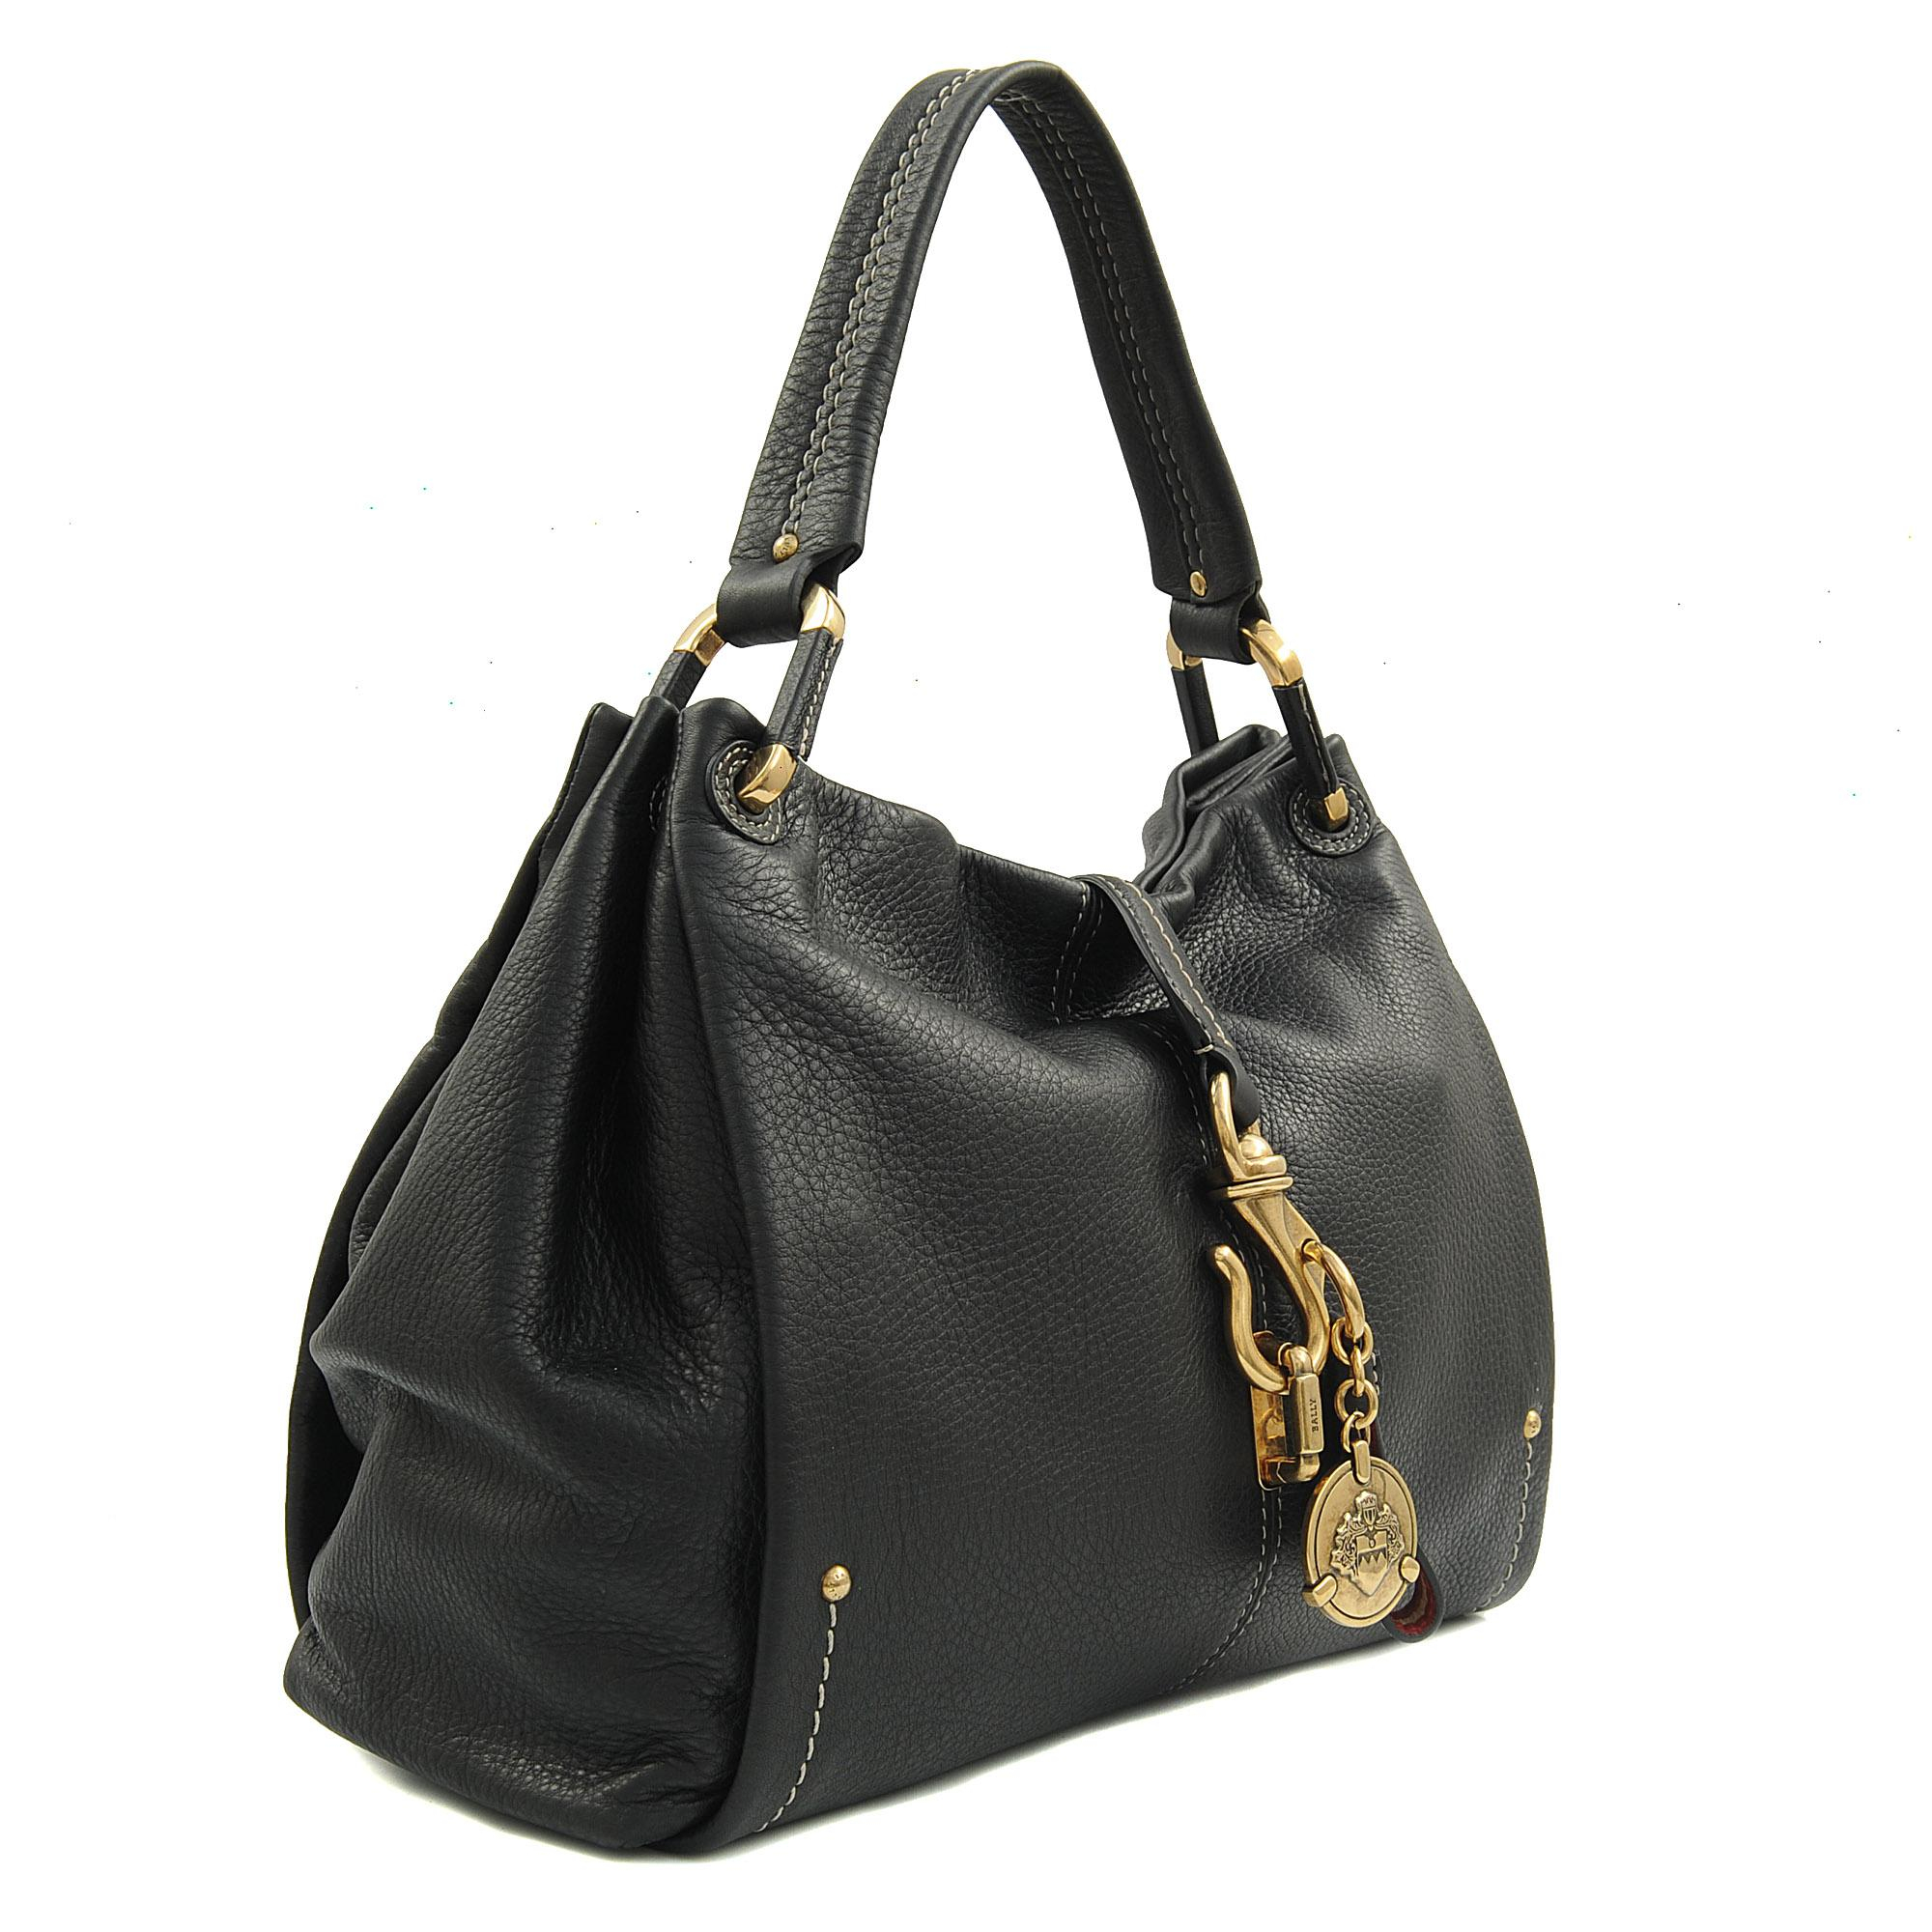 Creative After We Check It, The Goods Will Be Discounted On Sale Time Condition Used Condition Rank B Brand Bally Gender Women Style Bagpurse Model  Model Number  Color Black X Beige Material Leather X Canvas Sizecm About